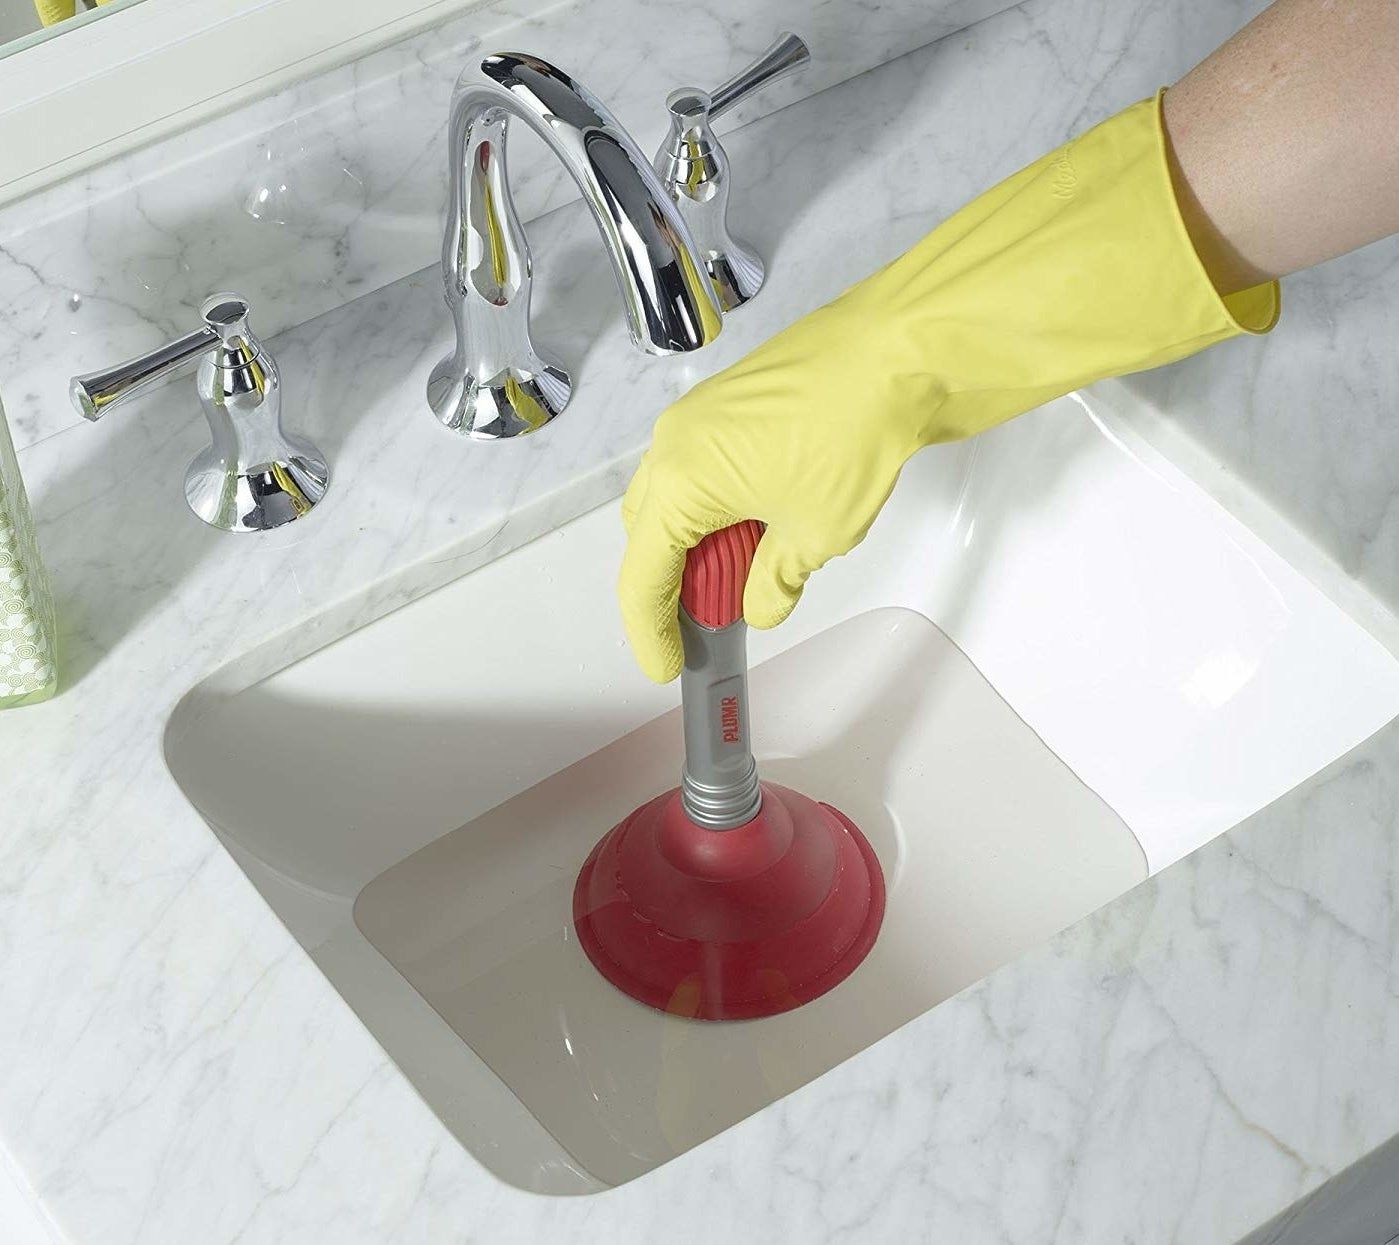 unclog your sink using a sink plunger